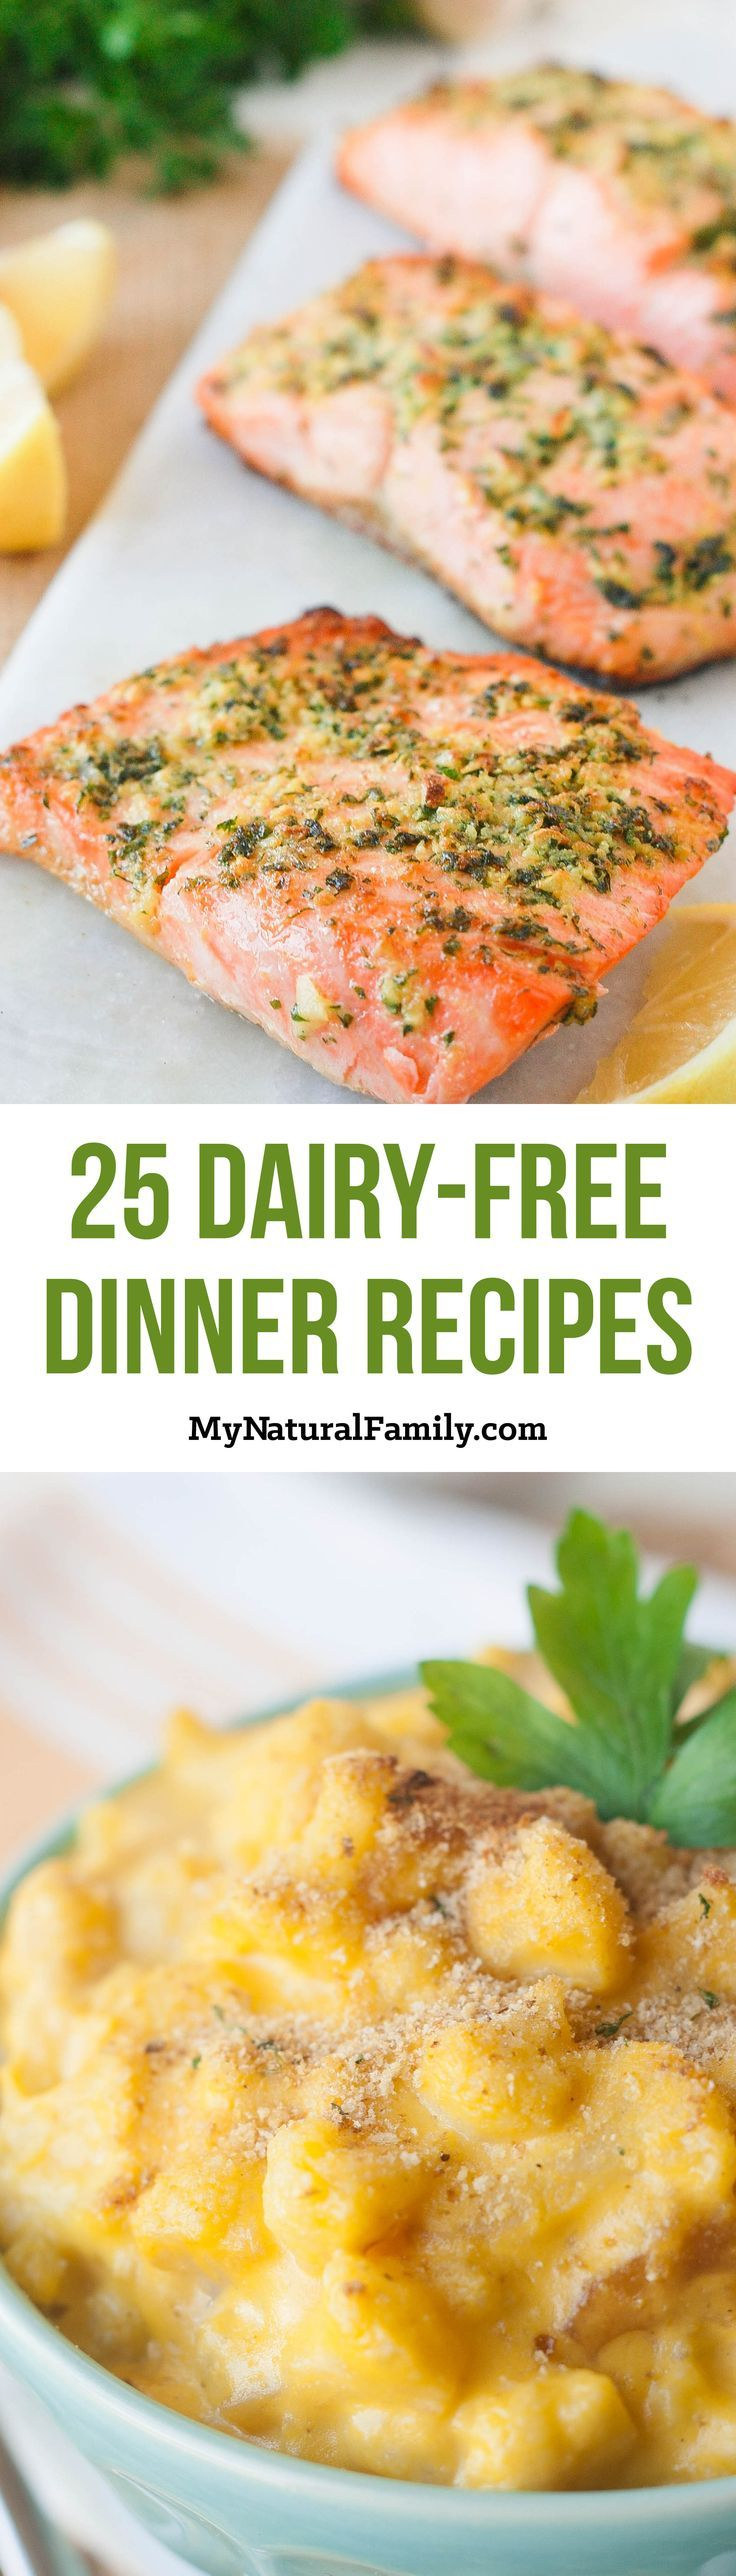 50 Dairy-Free Dinner Recipes - I want to try all of these! I love how there is a photo for each recipe and a link to click to get the recipe.                                                                                                                                                                                 More